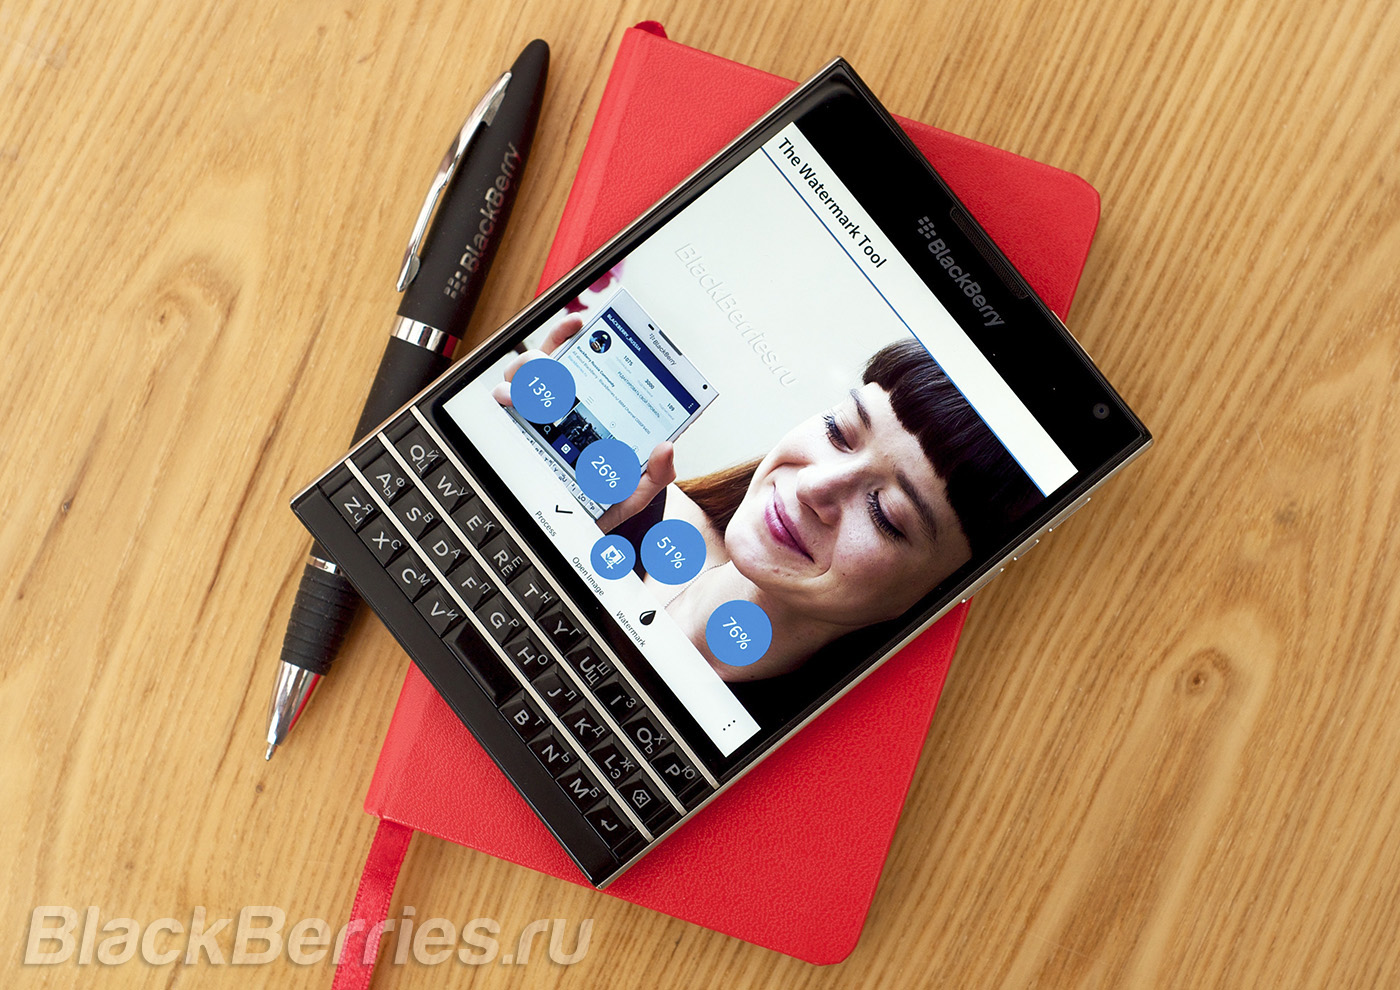 BlackBerry-Apps-28-06-3